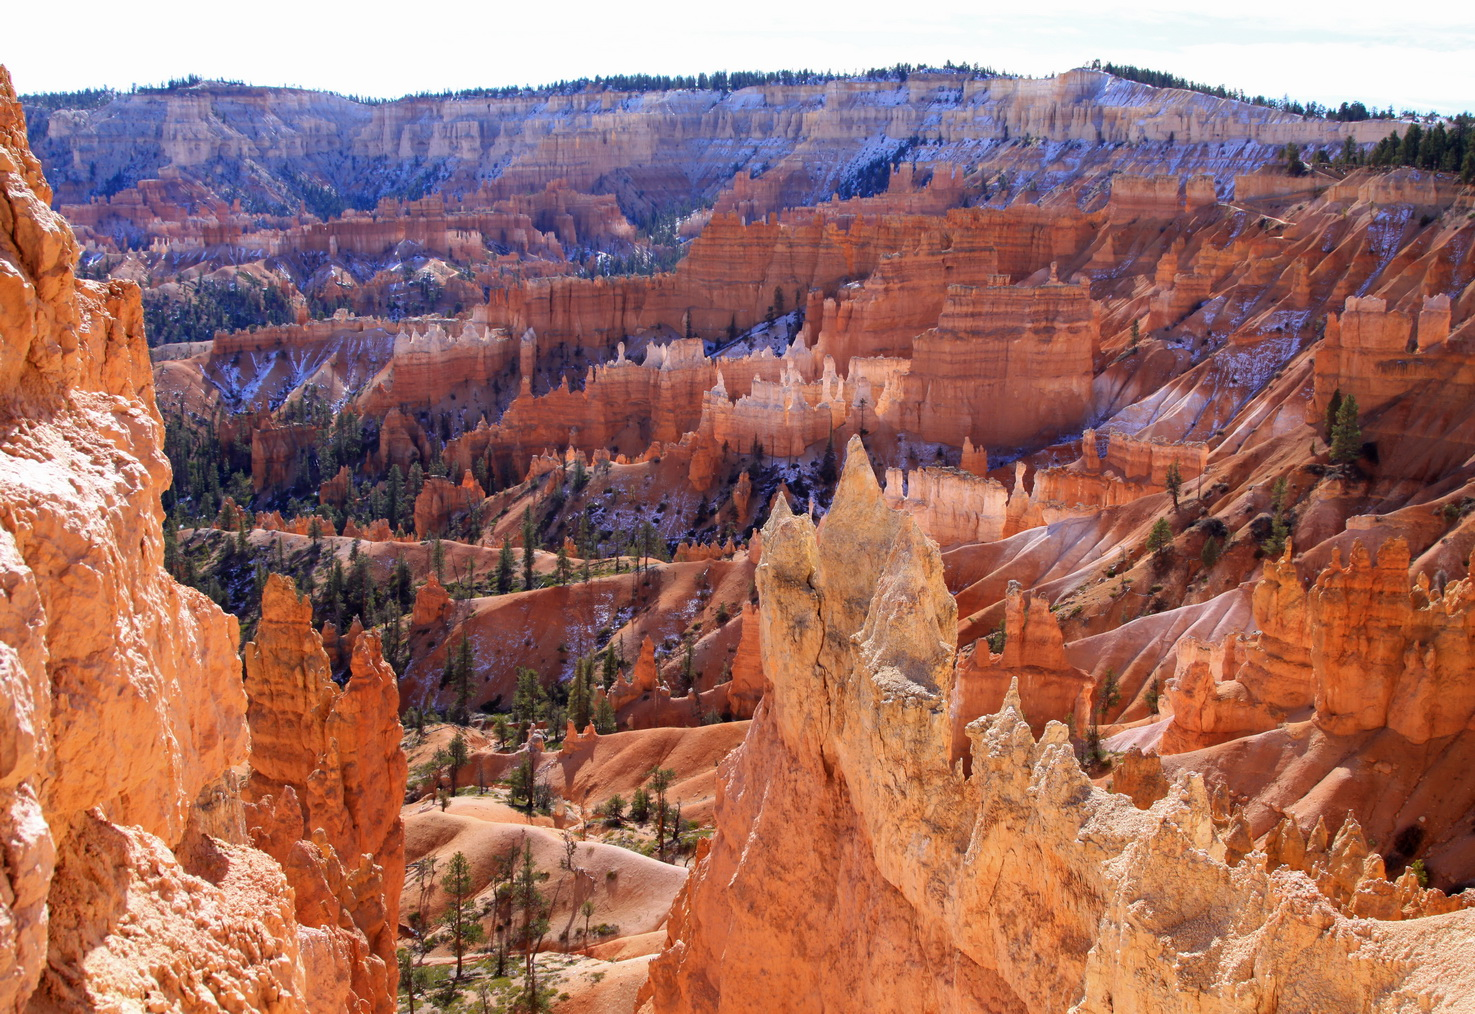 bryce canyon national park chat At bryce canyon national park you can camp, hike, bike, fish, or relax in the most beautiful place in southern utah book your vacation now.